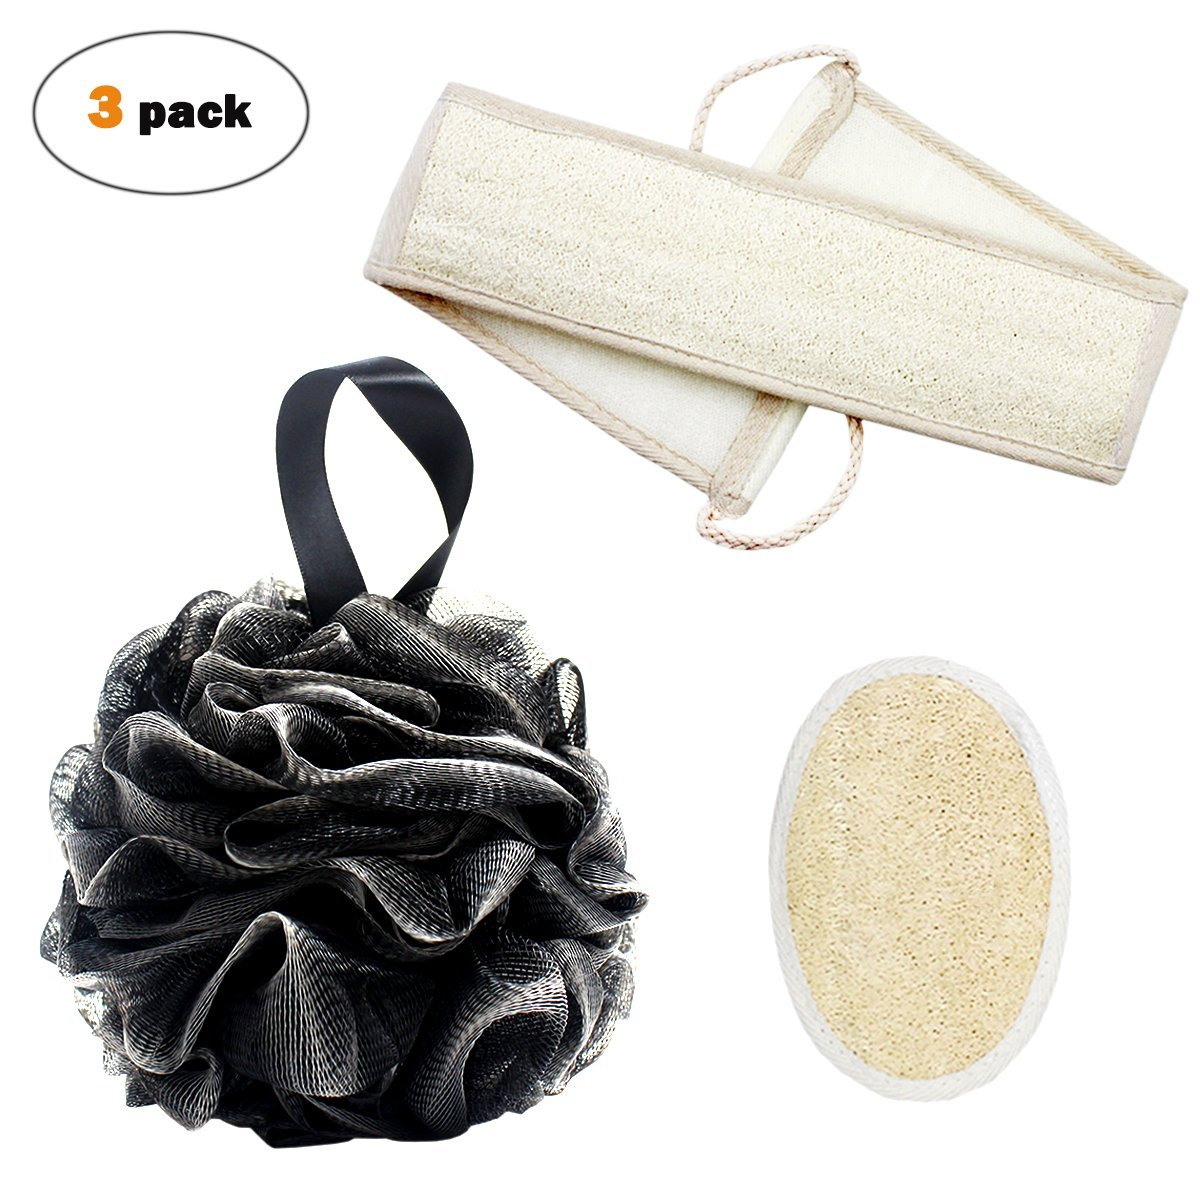 Bath Shower Sponge Loofahs 55g and Loofah Exfoliating Back Scrubber with Double Side Scrubbing Strap and Sponge Pad for Men and Women Qntry